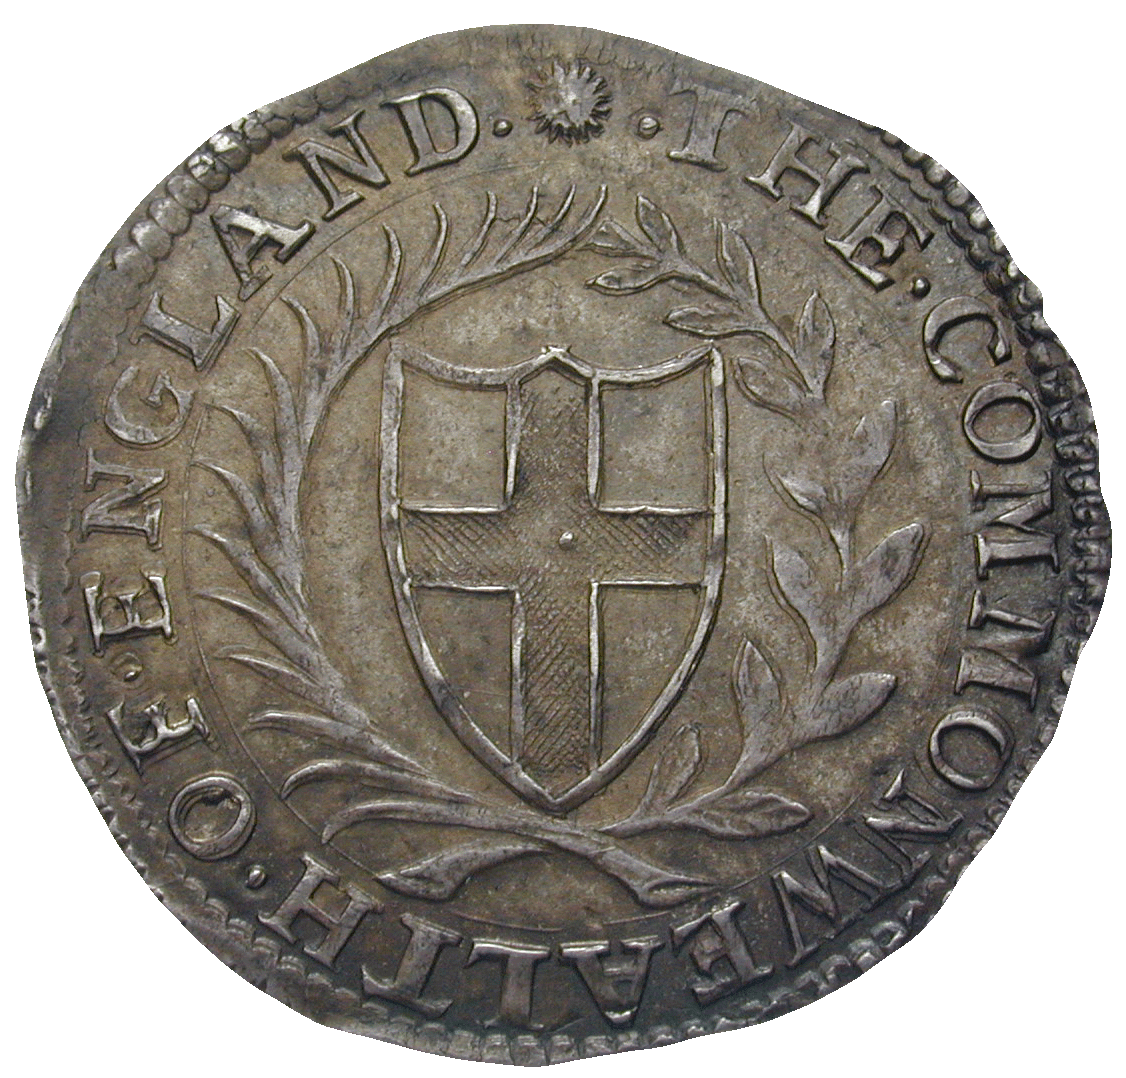 Commonwealth of England, Sixpence 1653 (obverse)